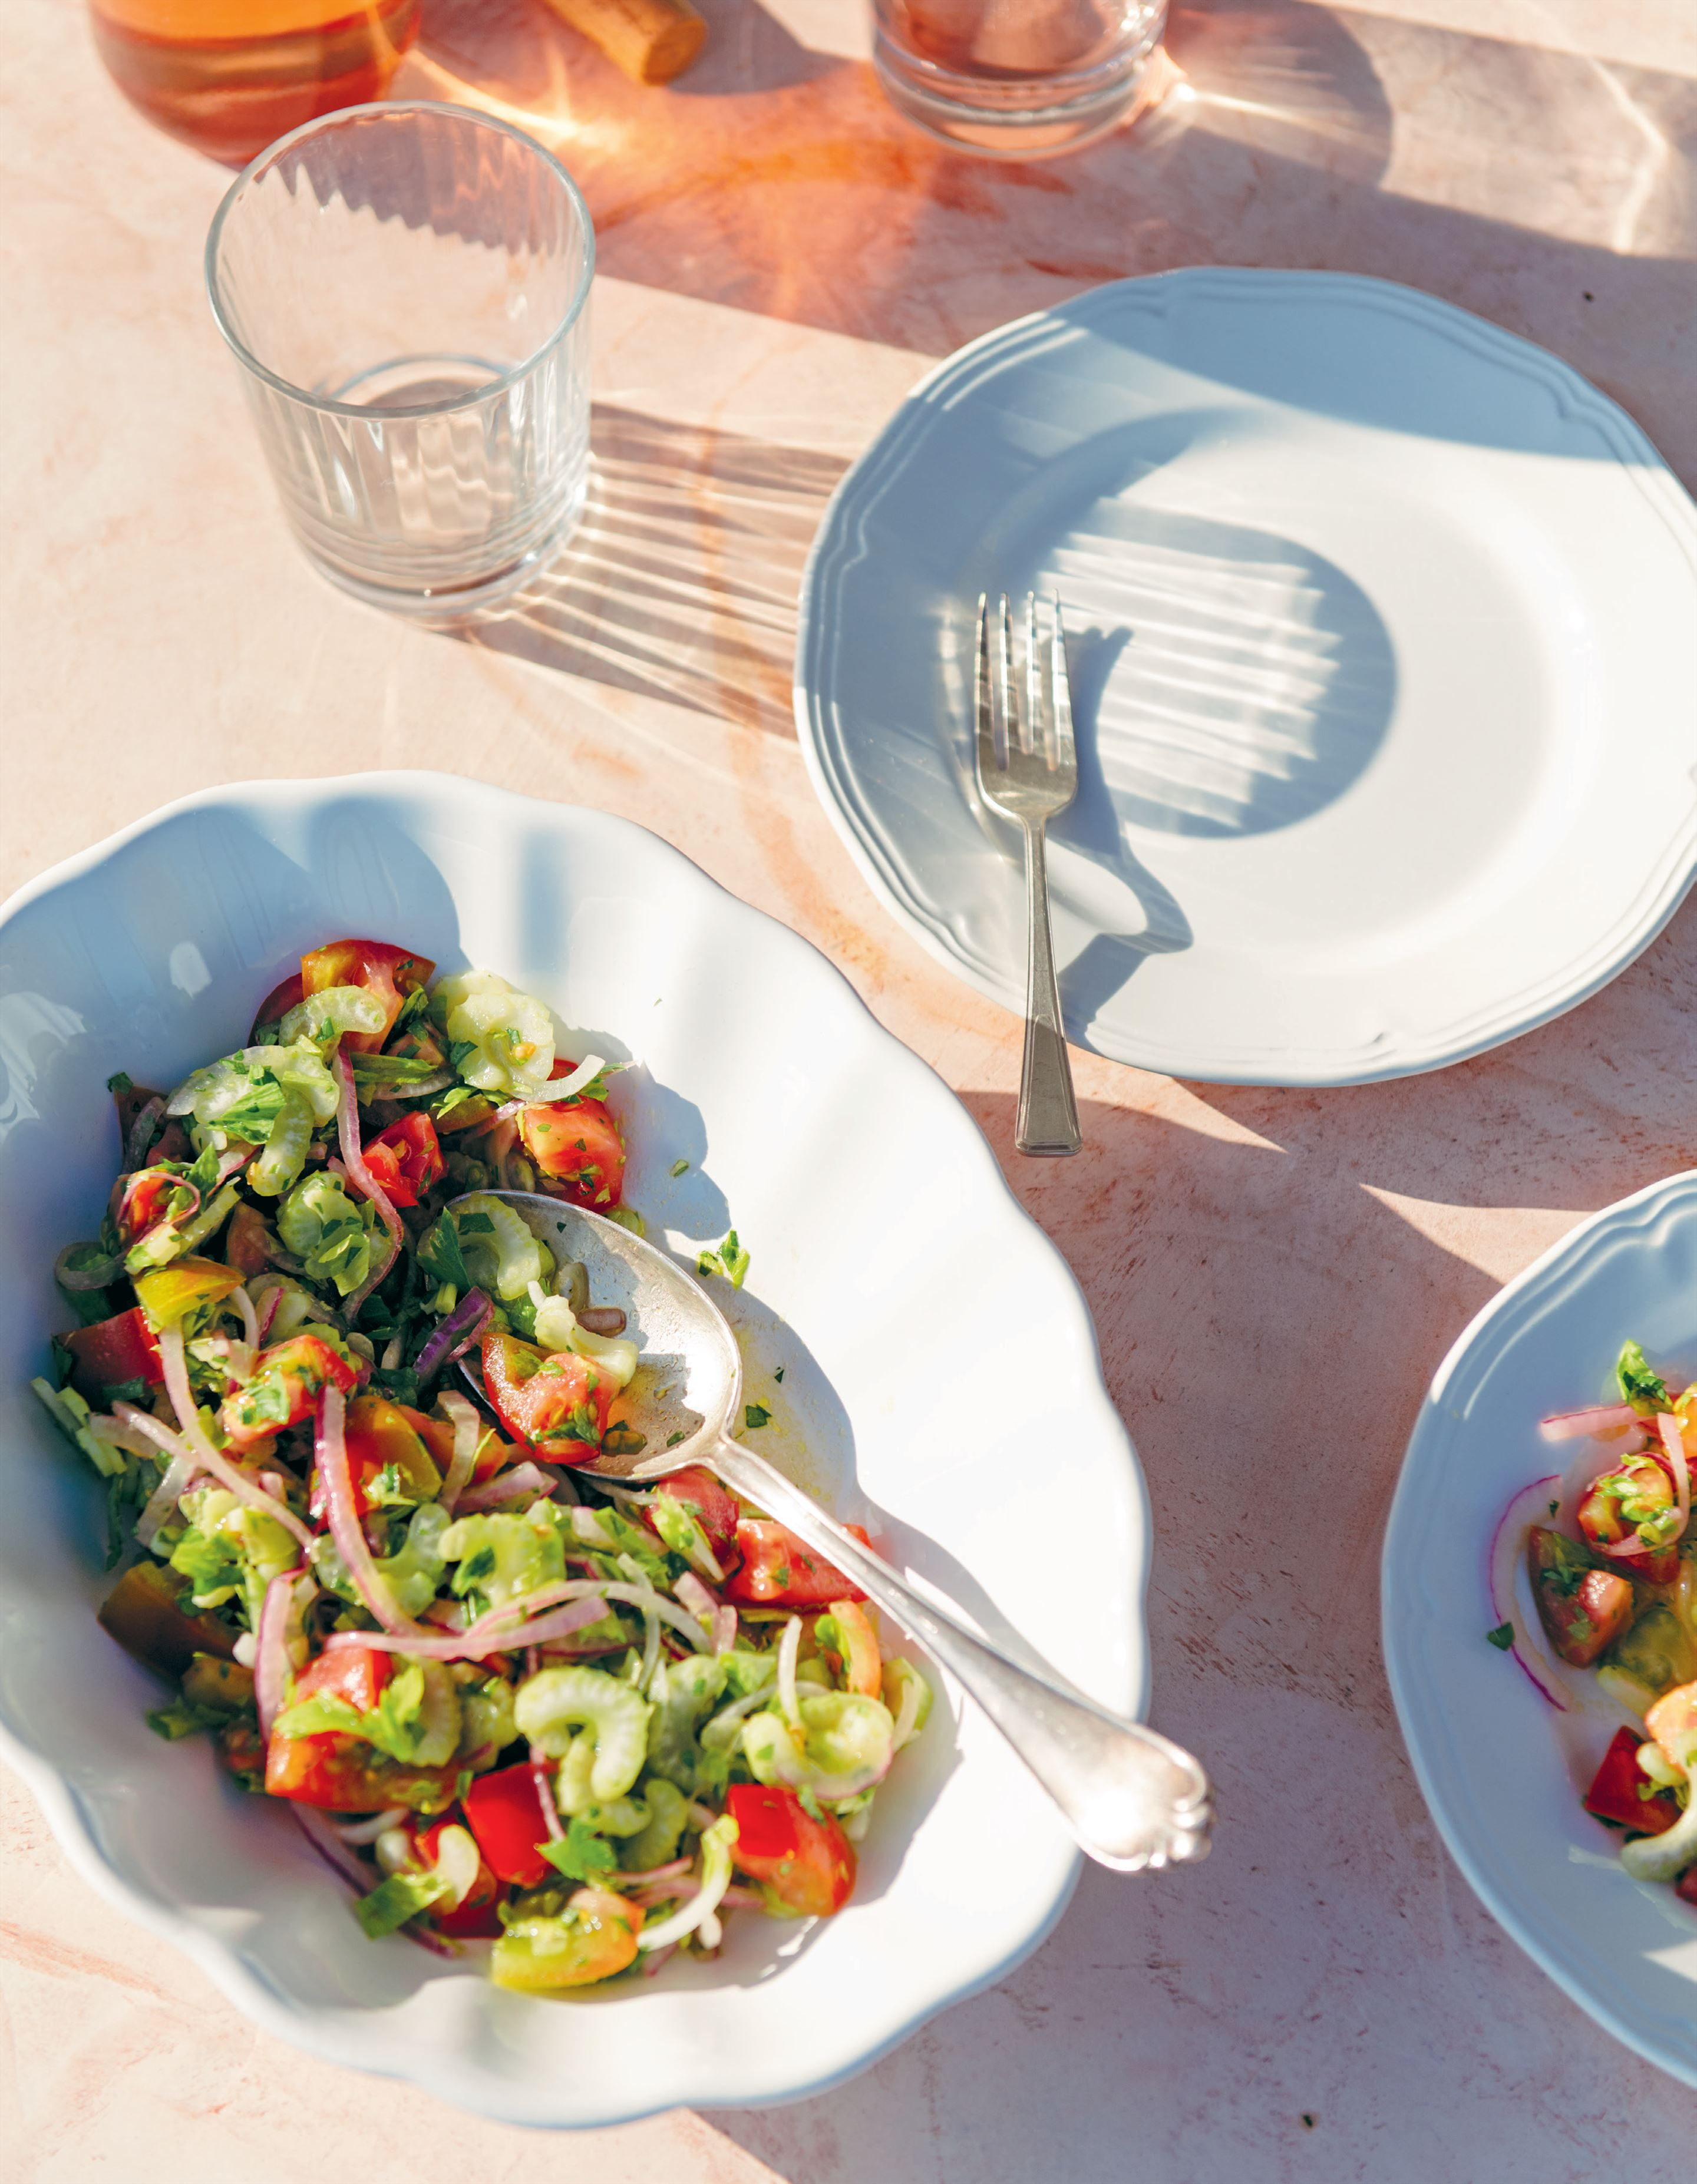 Tomato and celery salad from giglio island